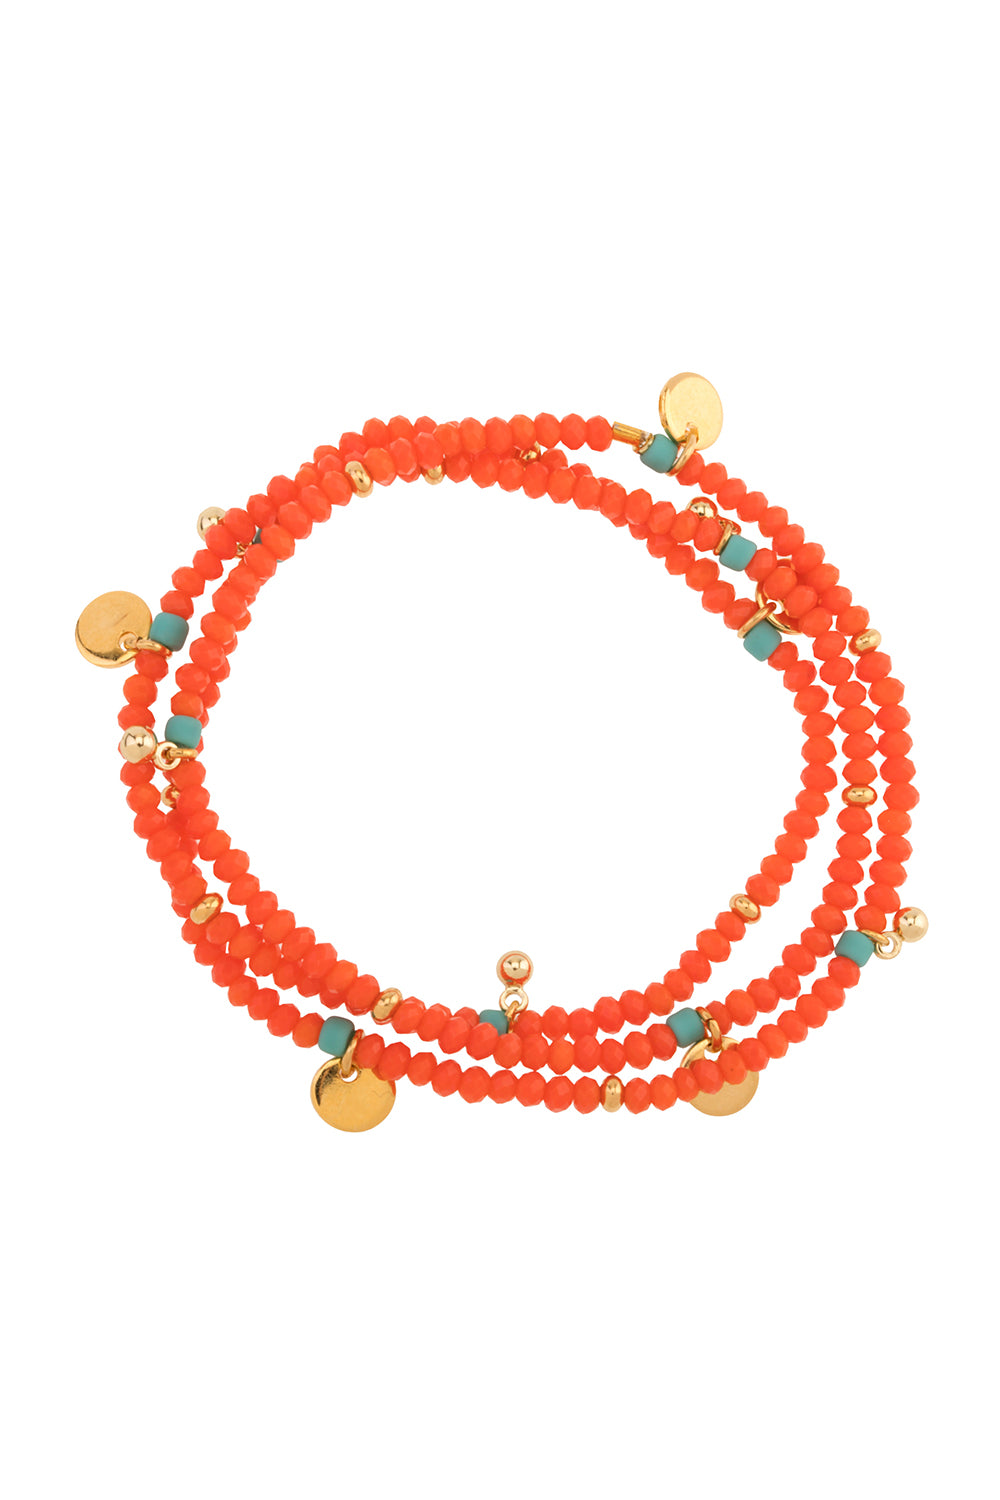 Mallorca Stretch Bracelet in Coral Orange